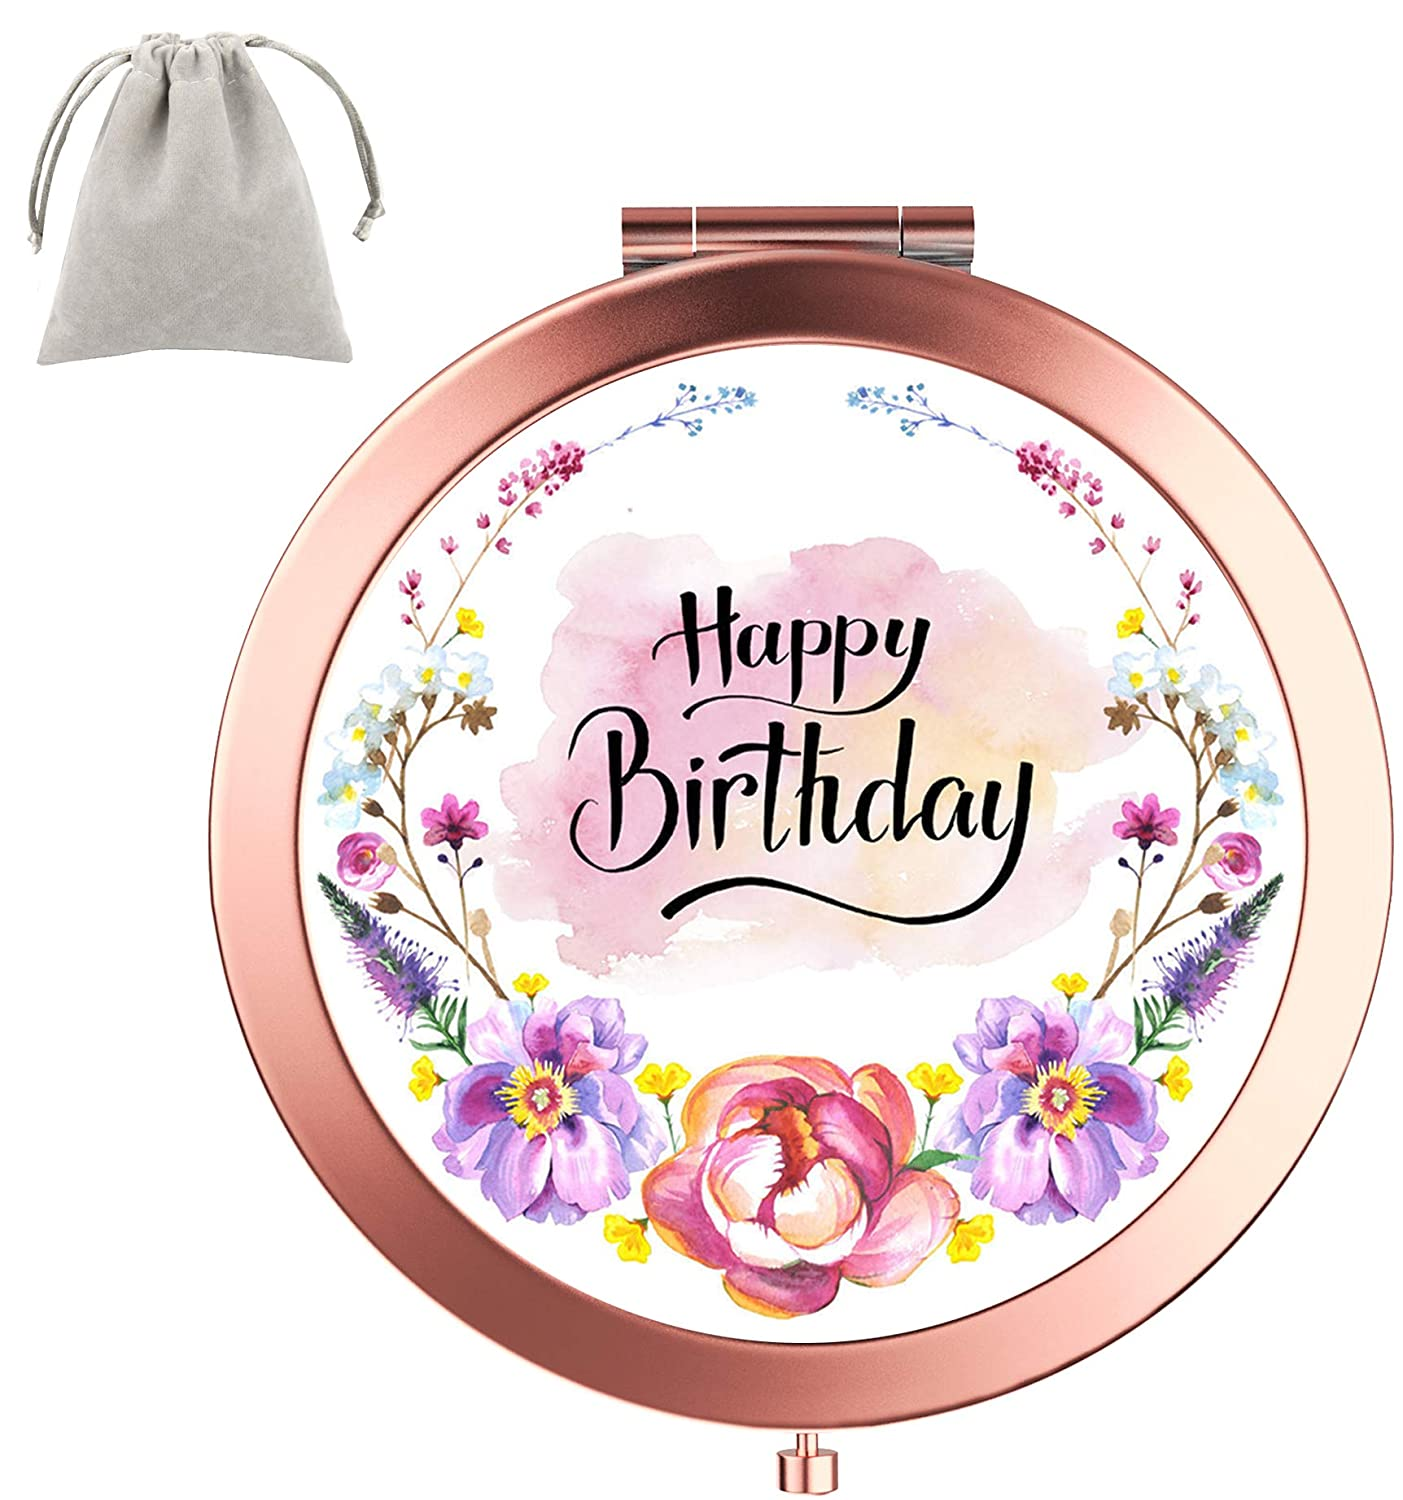 Compact Mirror Dynippy Round Rose Gold 2 x 1x Magnification Makeup Mirror for Purses and Travel Folding Mini Pocket Mirror Portable Hand for Girls Woman Mother - Happy Birthday